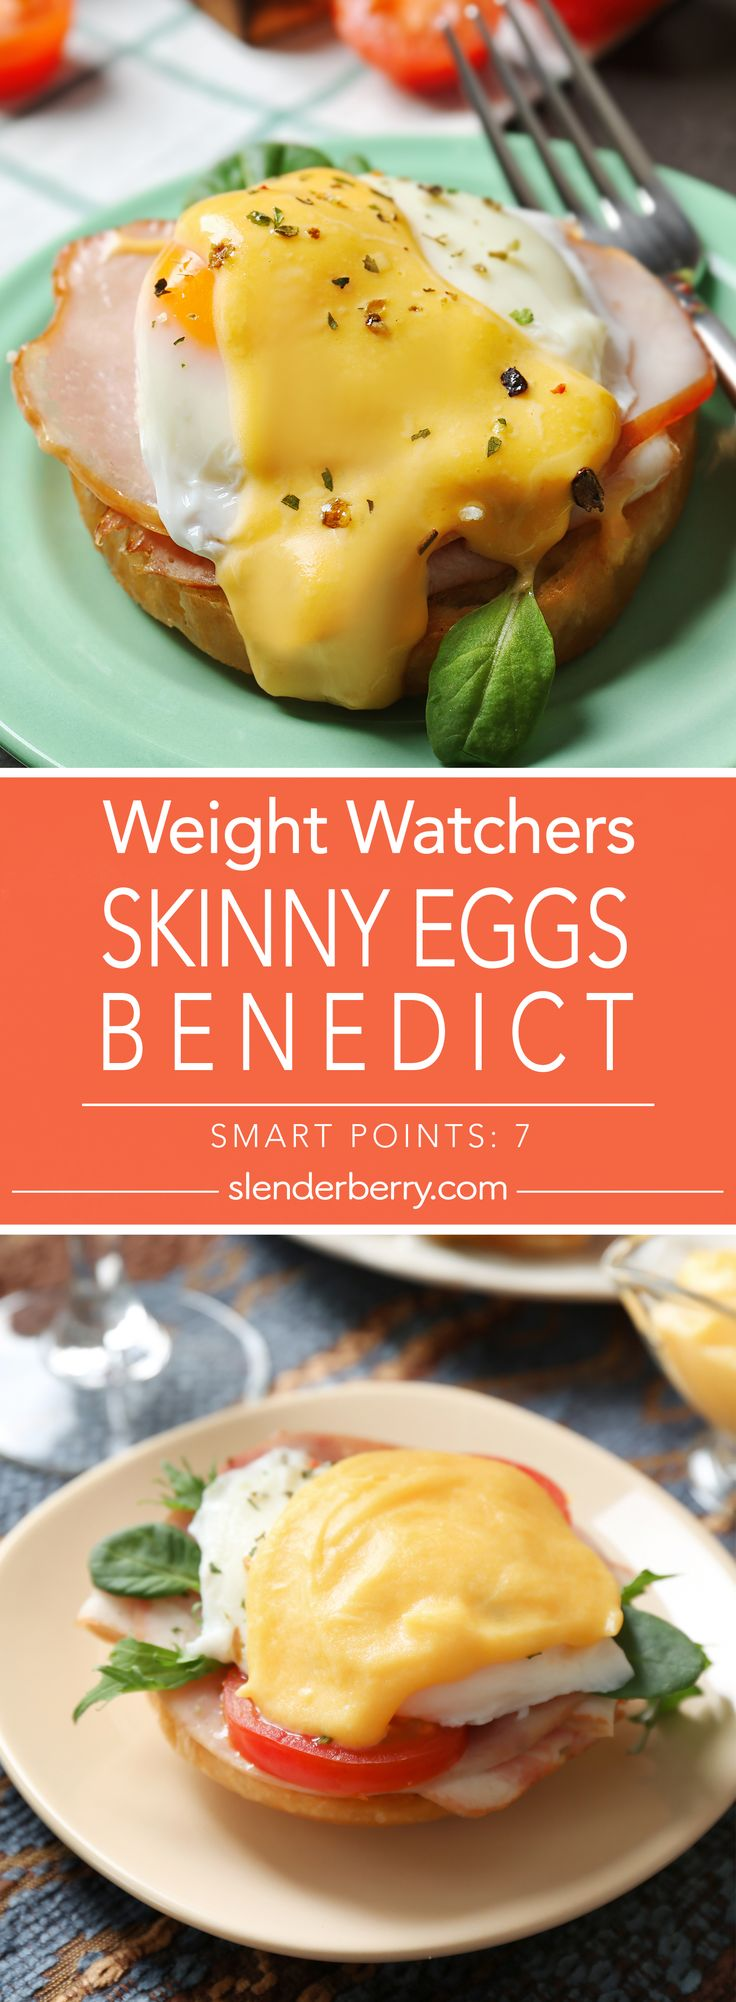 Weight Watchers Skinny Eggs Benedict Recipe - 7 Smart Points